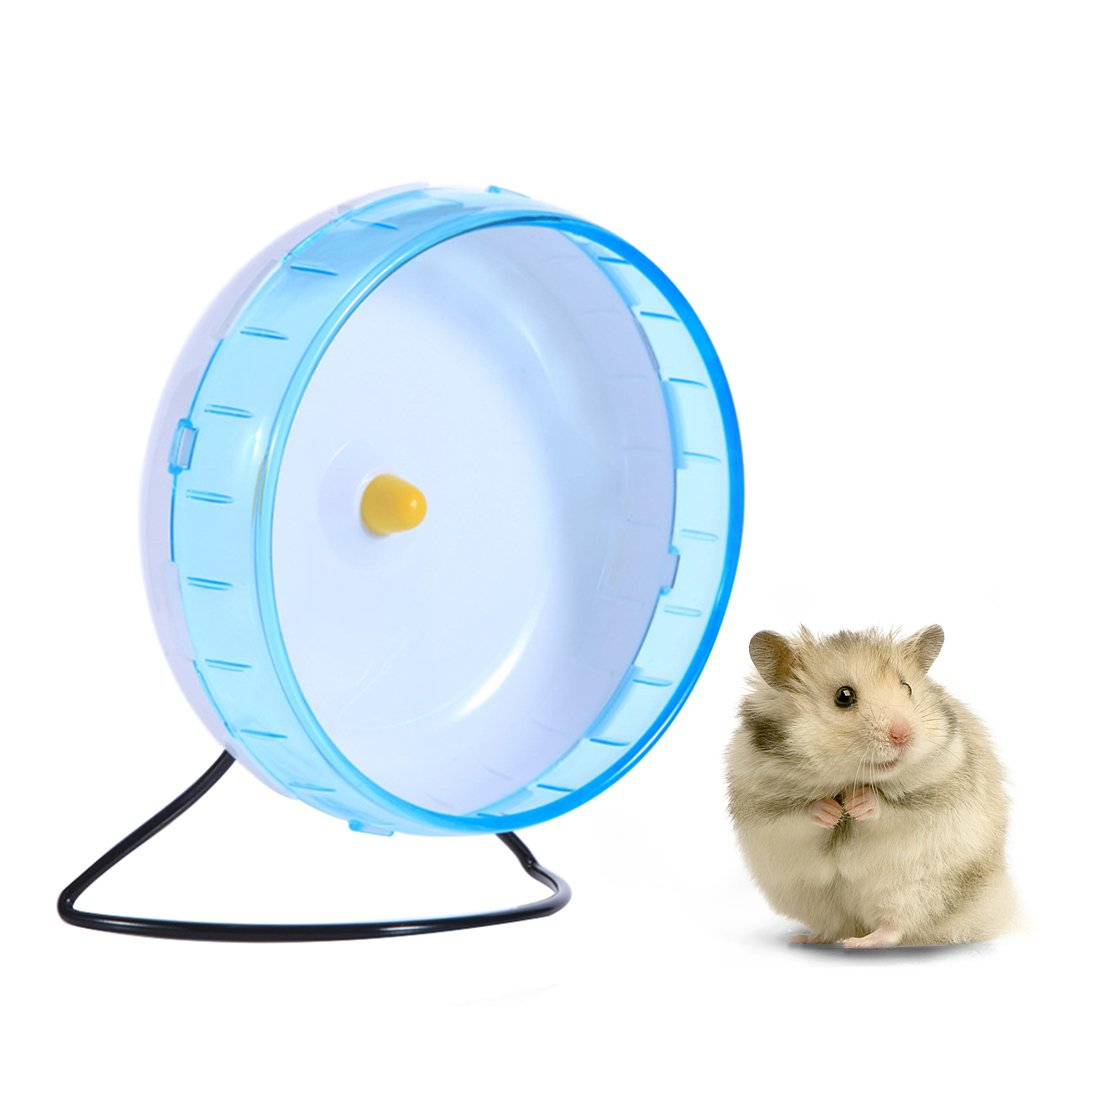 Hamster Wheel 8.3 Inches Durable Exercise Running Wheel for Gerbils Hamsters Mice Chinchilla and other Small Animals Stand with Removable Shaft Blue